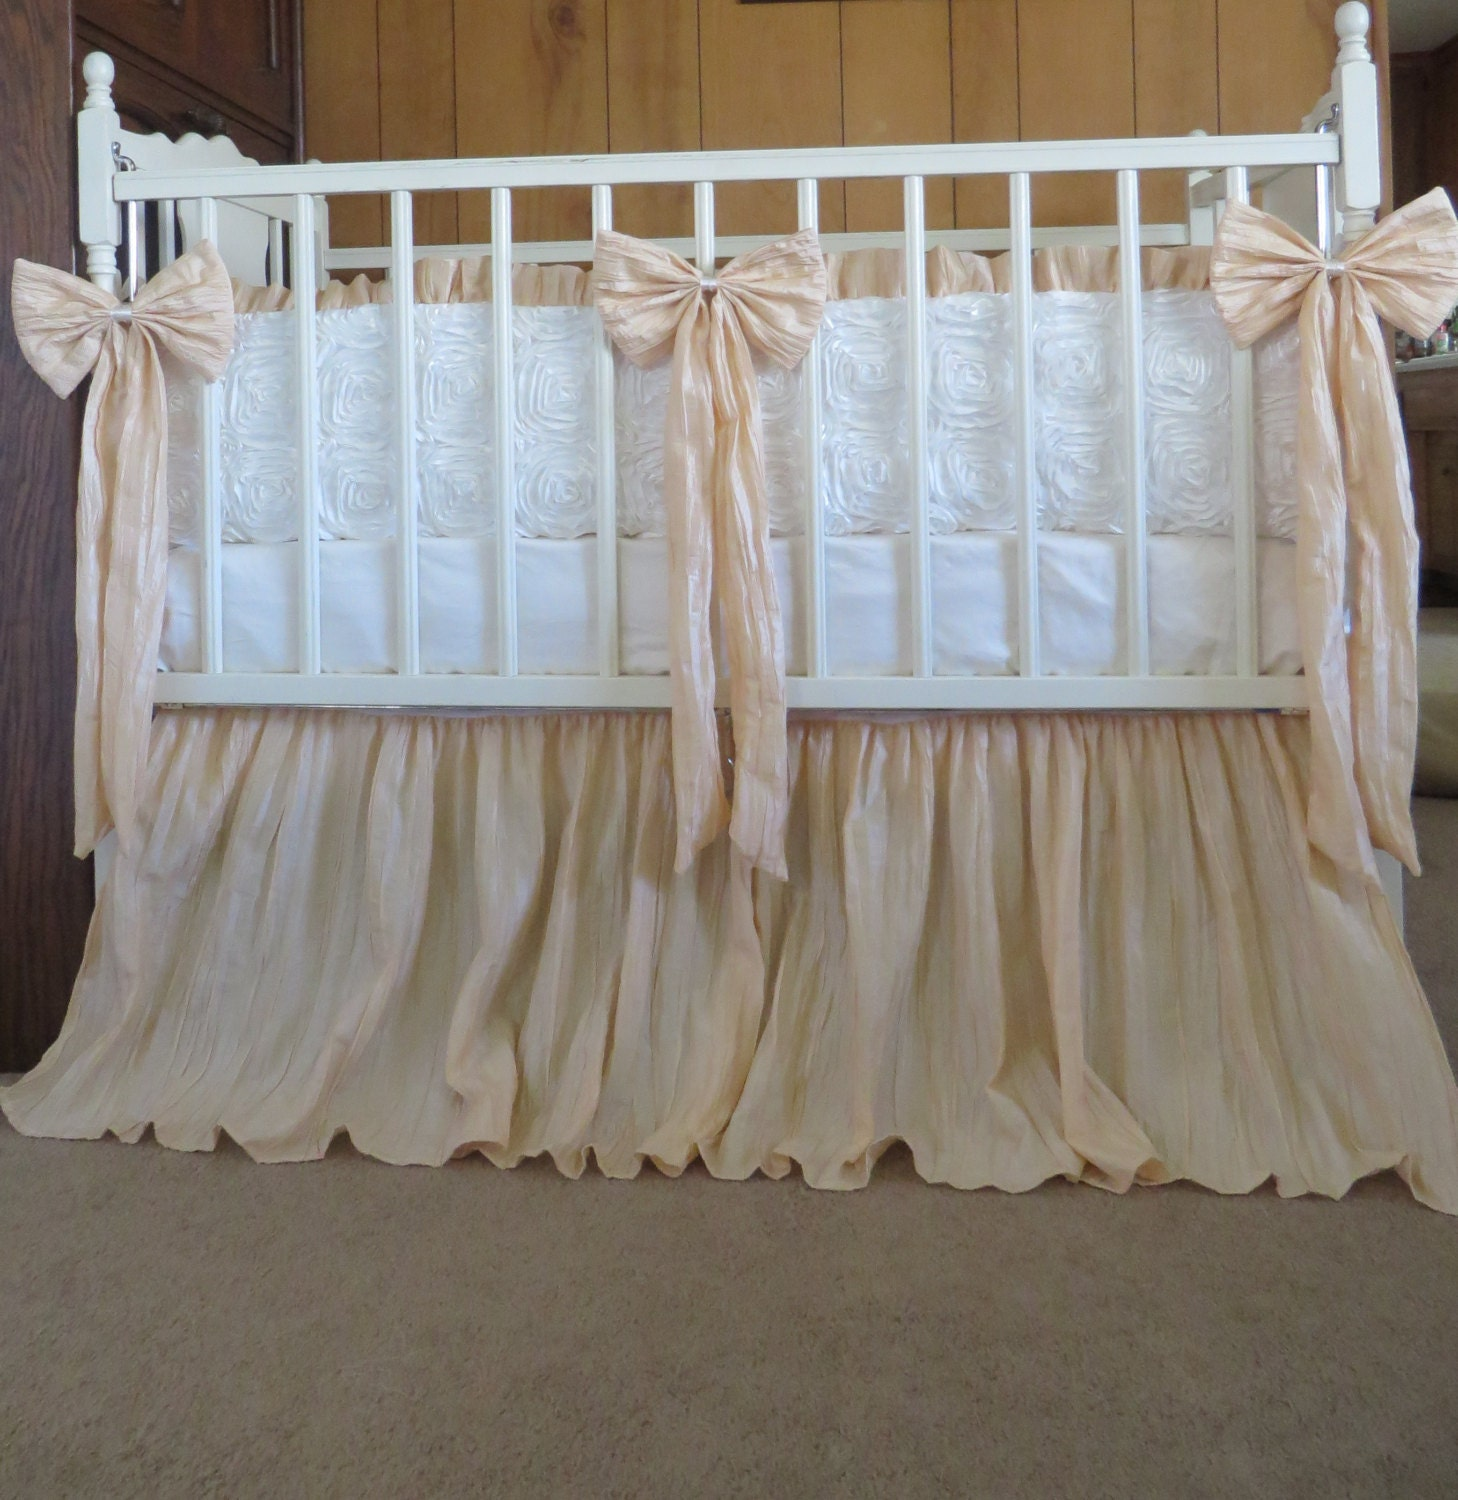 vintage inspired crib bedding in ivory and crinkled tan light